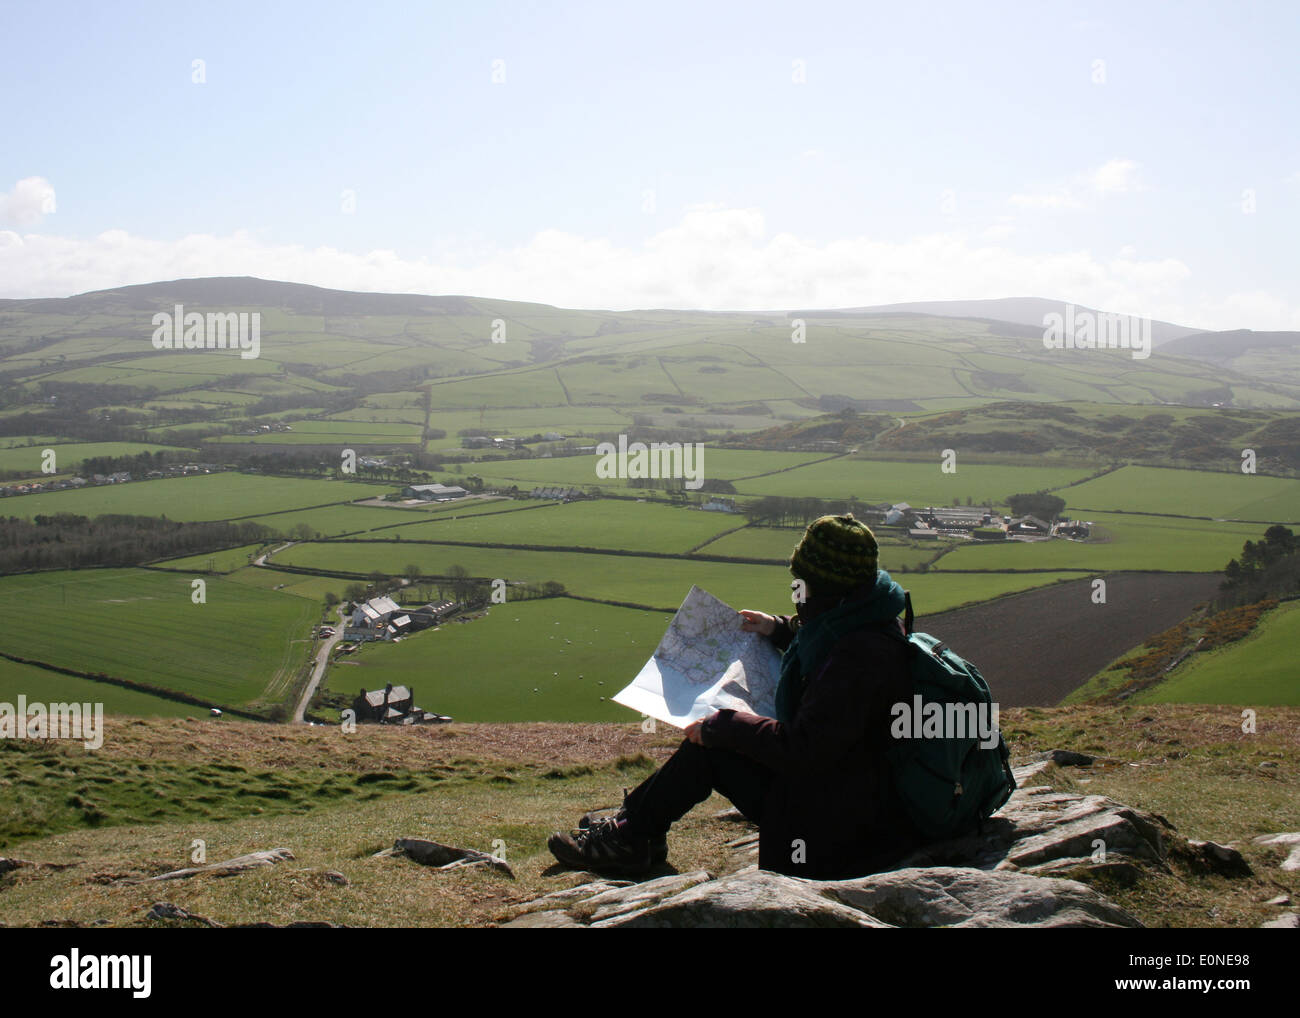 Hiker on Hill with Map - Stock Image